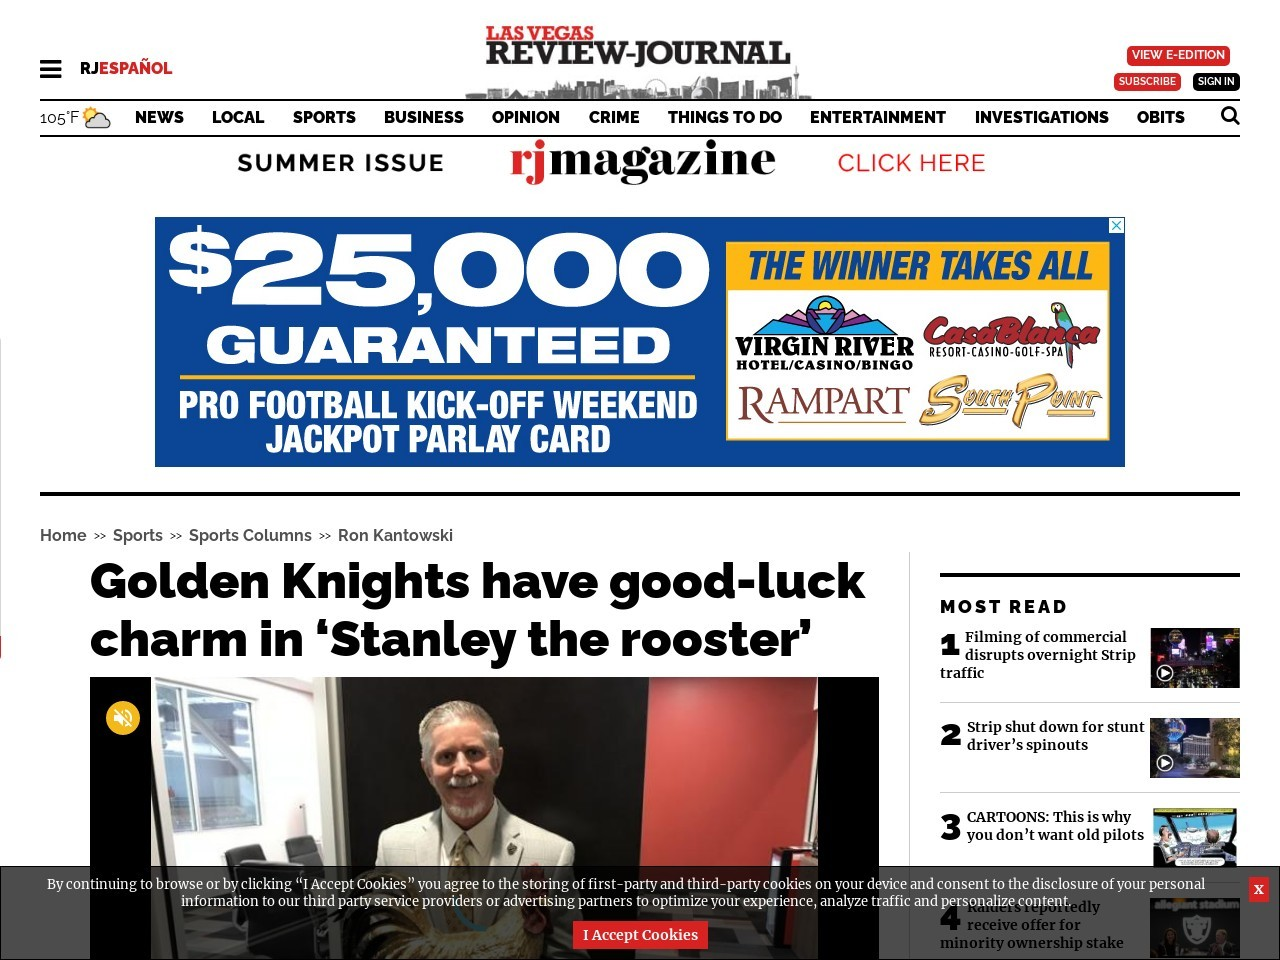 Golden Knights have good-luck charm in 'Stanley the rooster'